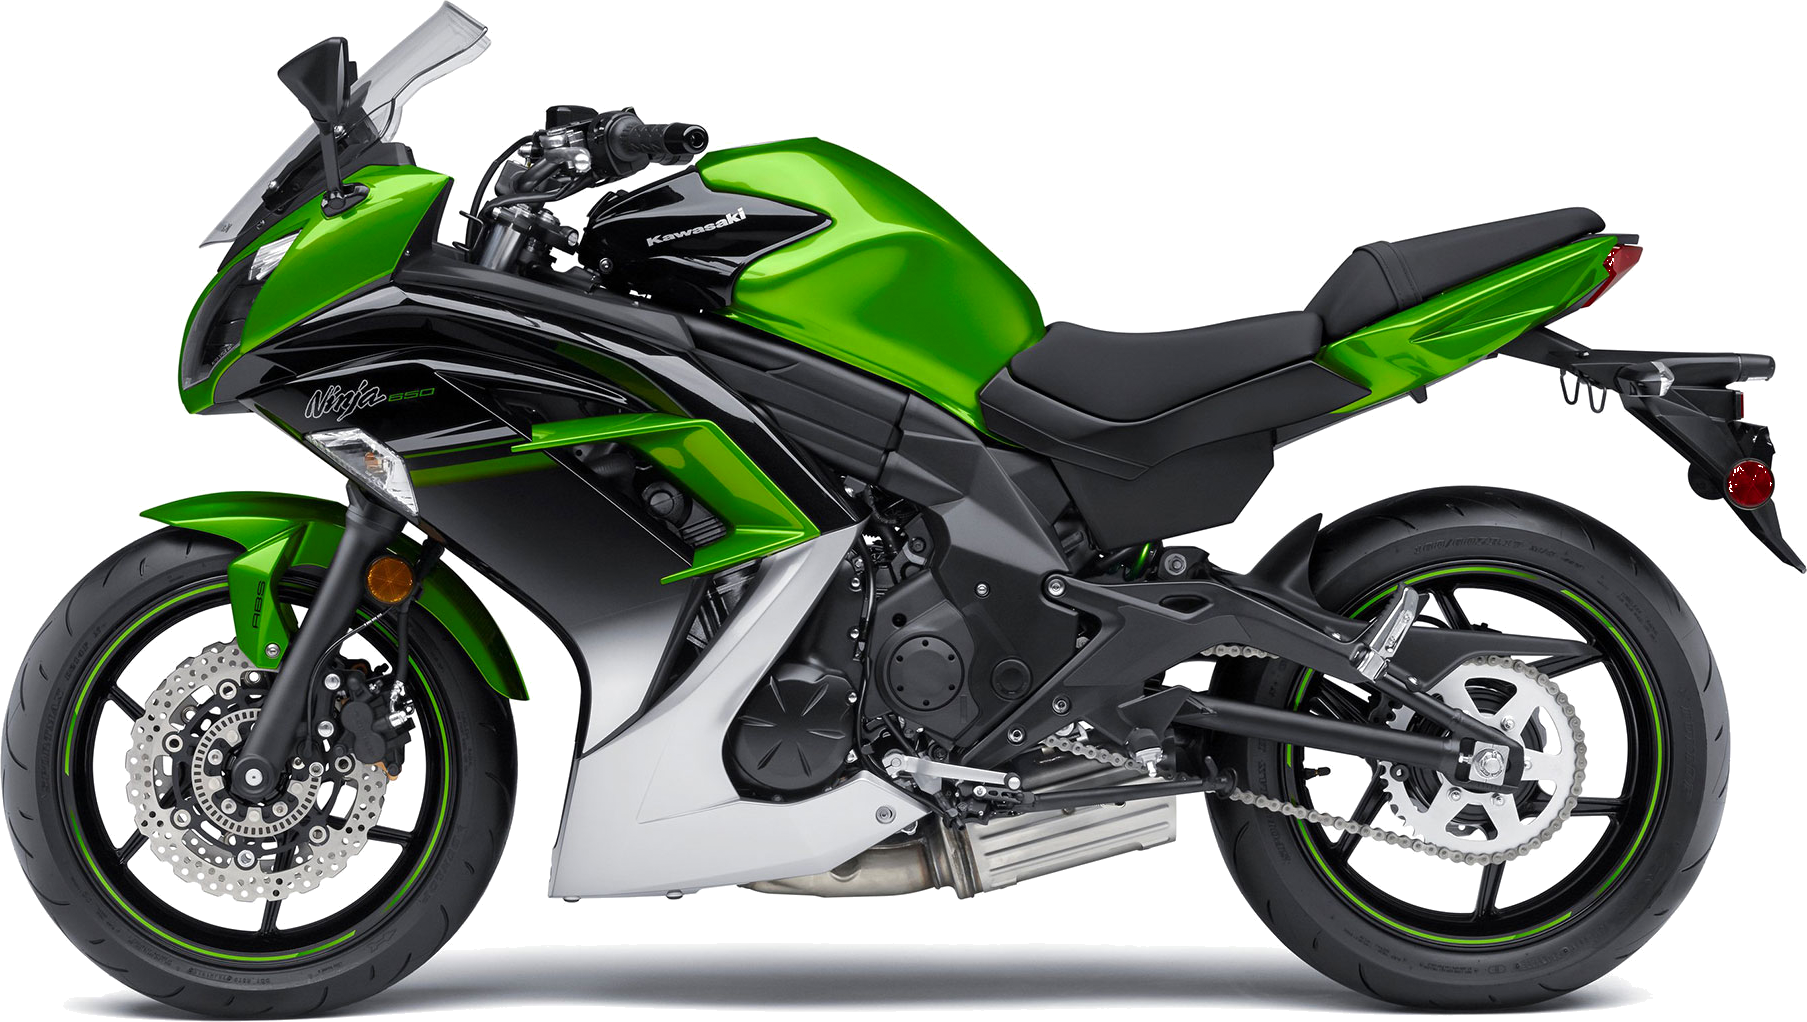 Best Sport-Touring Motorcycle of 2014